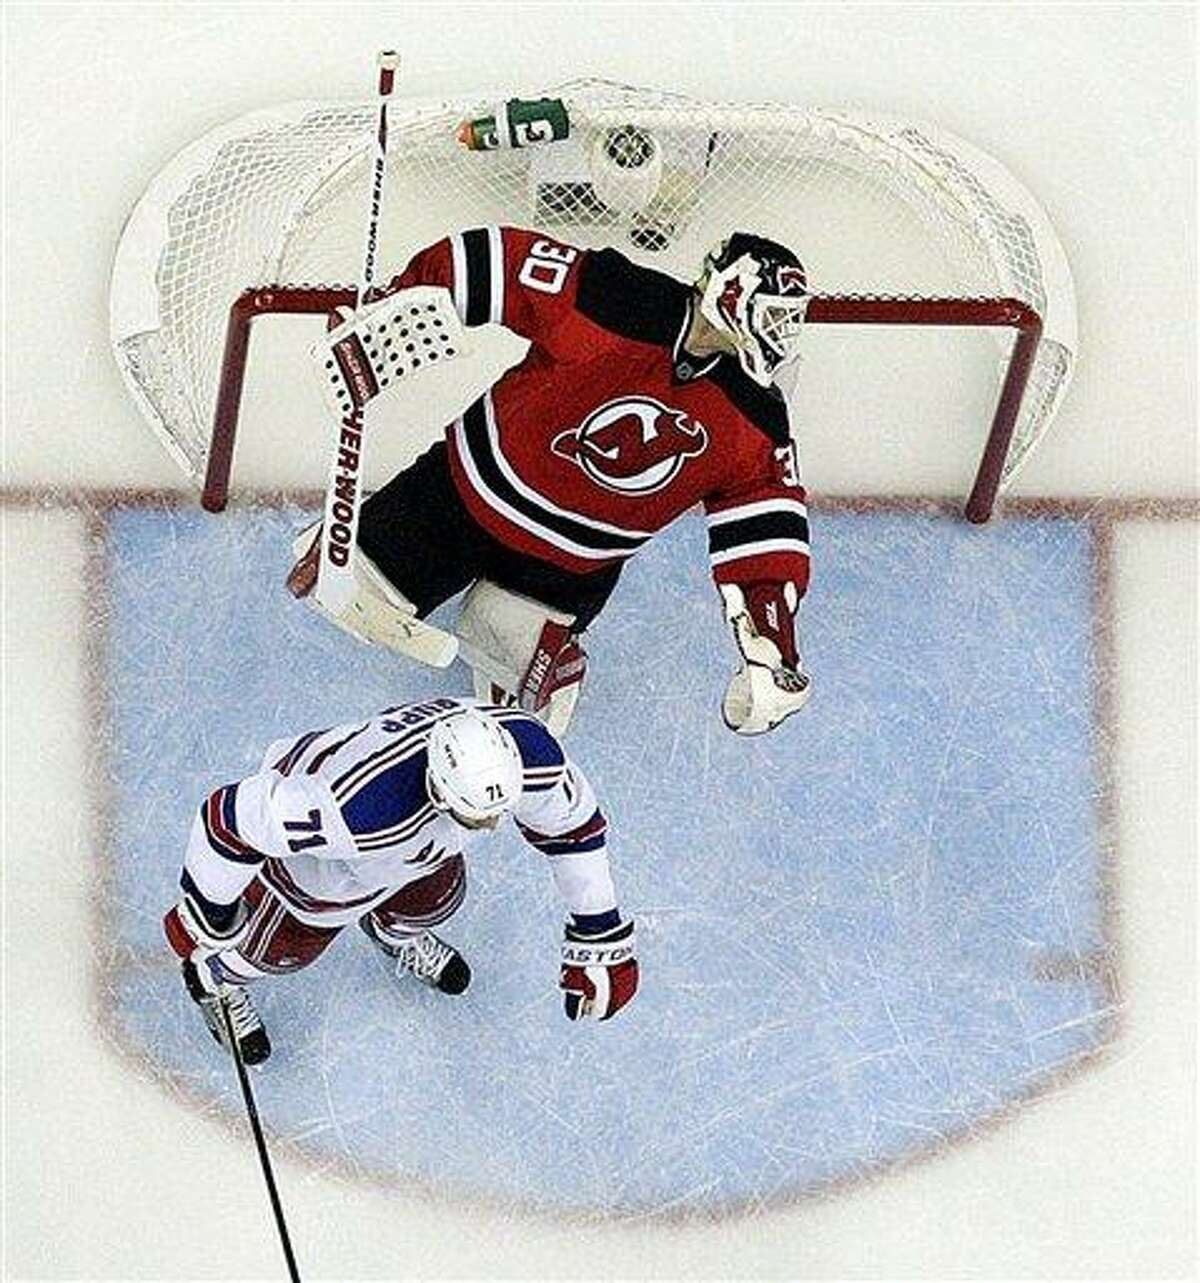 New Jersey Devils goalie Martin Brodeur, top, reacts after being punched by New York Rangers' Mike Rupp, center, during the third period of Game 4 of an NHL hockey Stanley Cup Eastern Conference final playoff series, Monday, May 21, 2012, in Newark, N.J. The Devils won 4-1. (AP Photo/Julio Cortez)